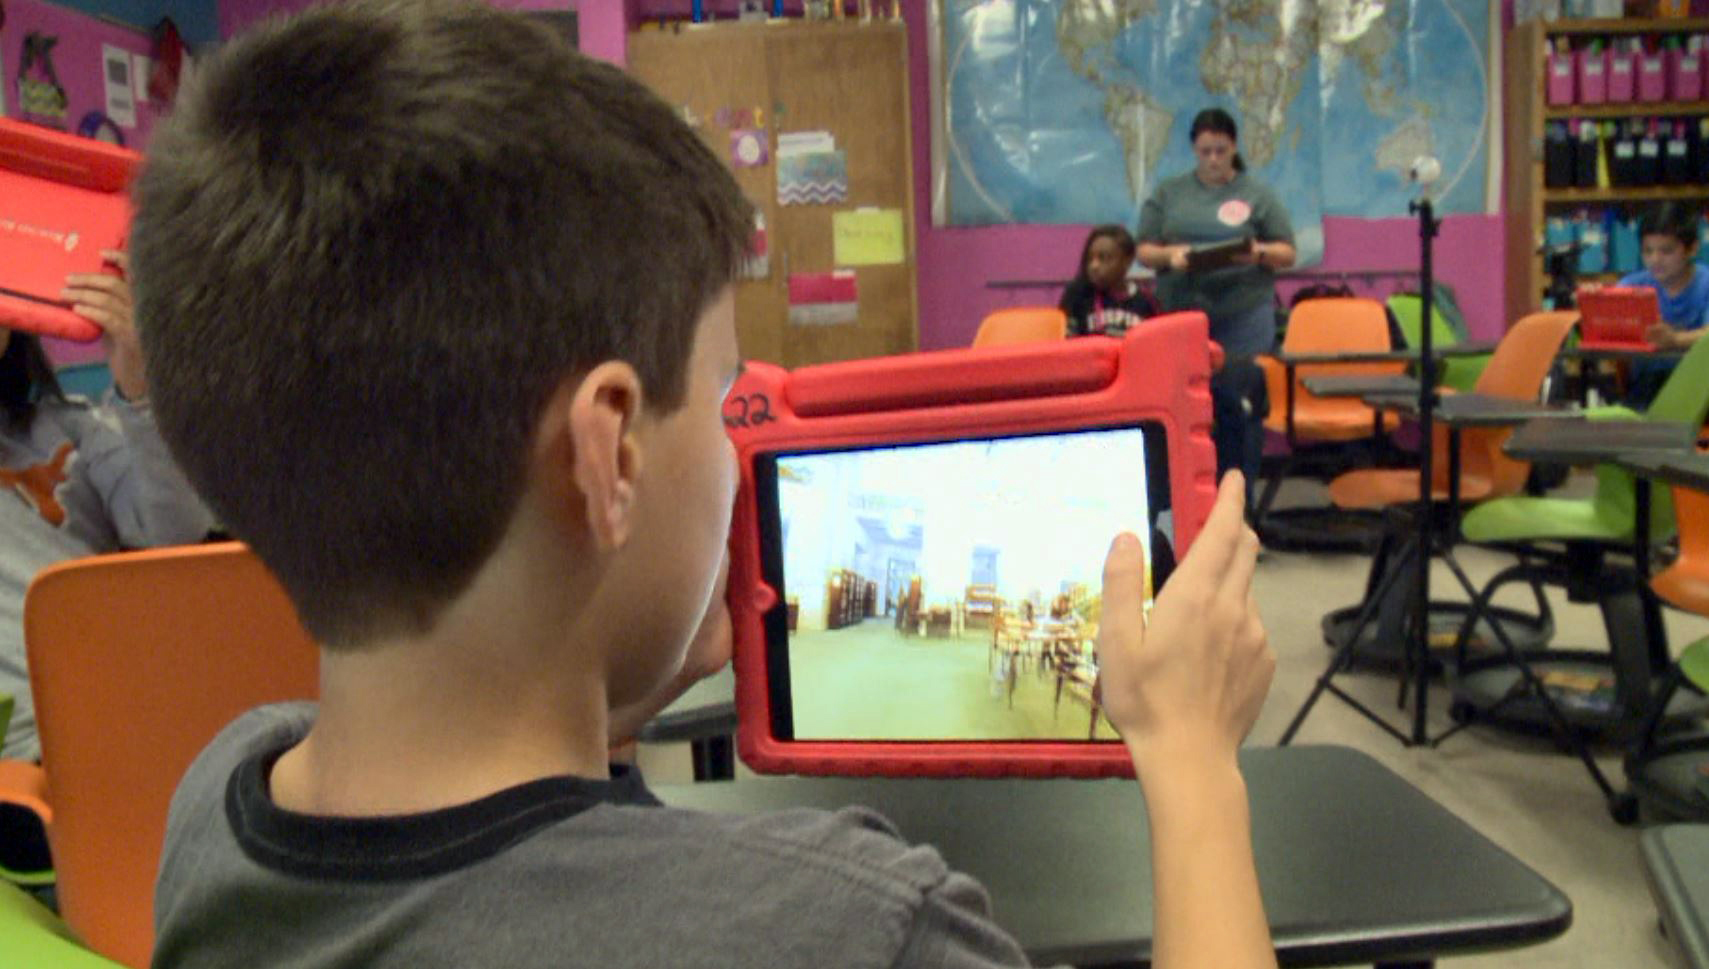 Deepark Middle School students learn about Pakistan through virtual reality. (KXAN Photo/Paul Shelton)